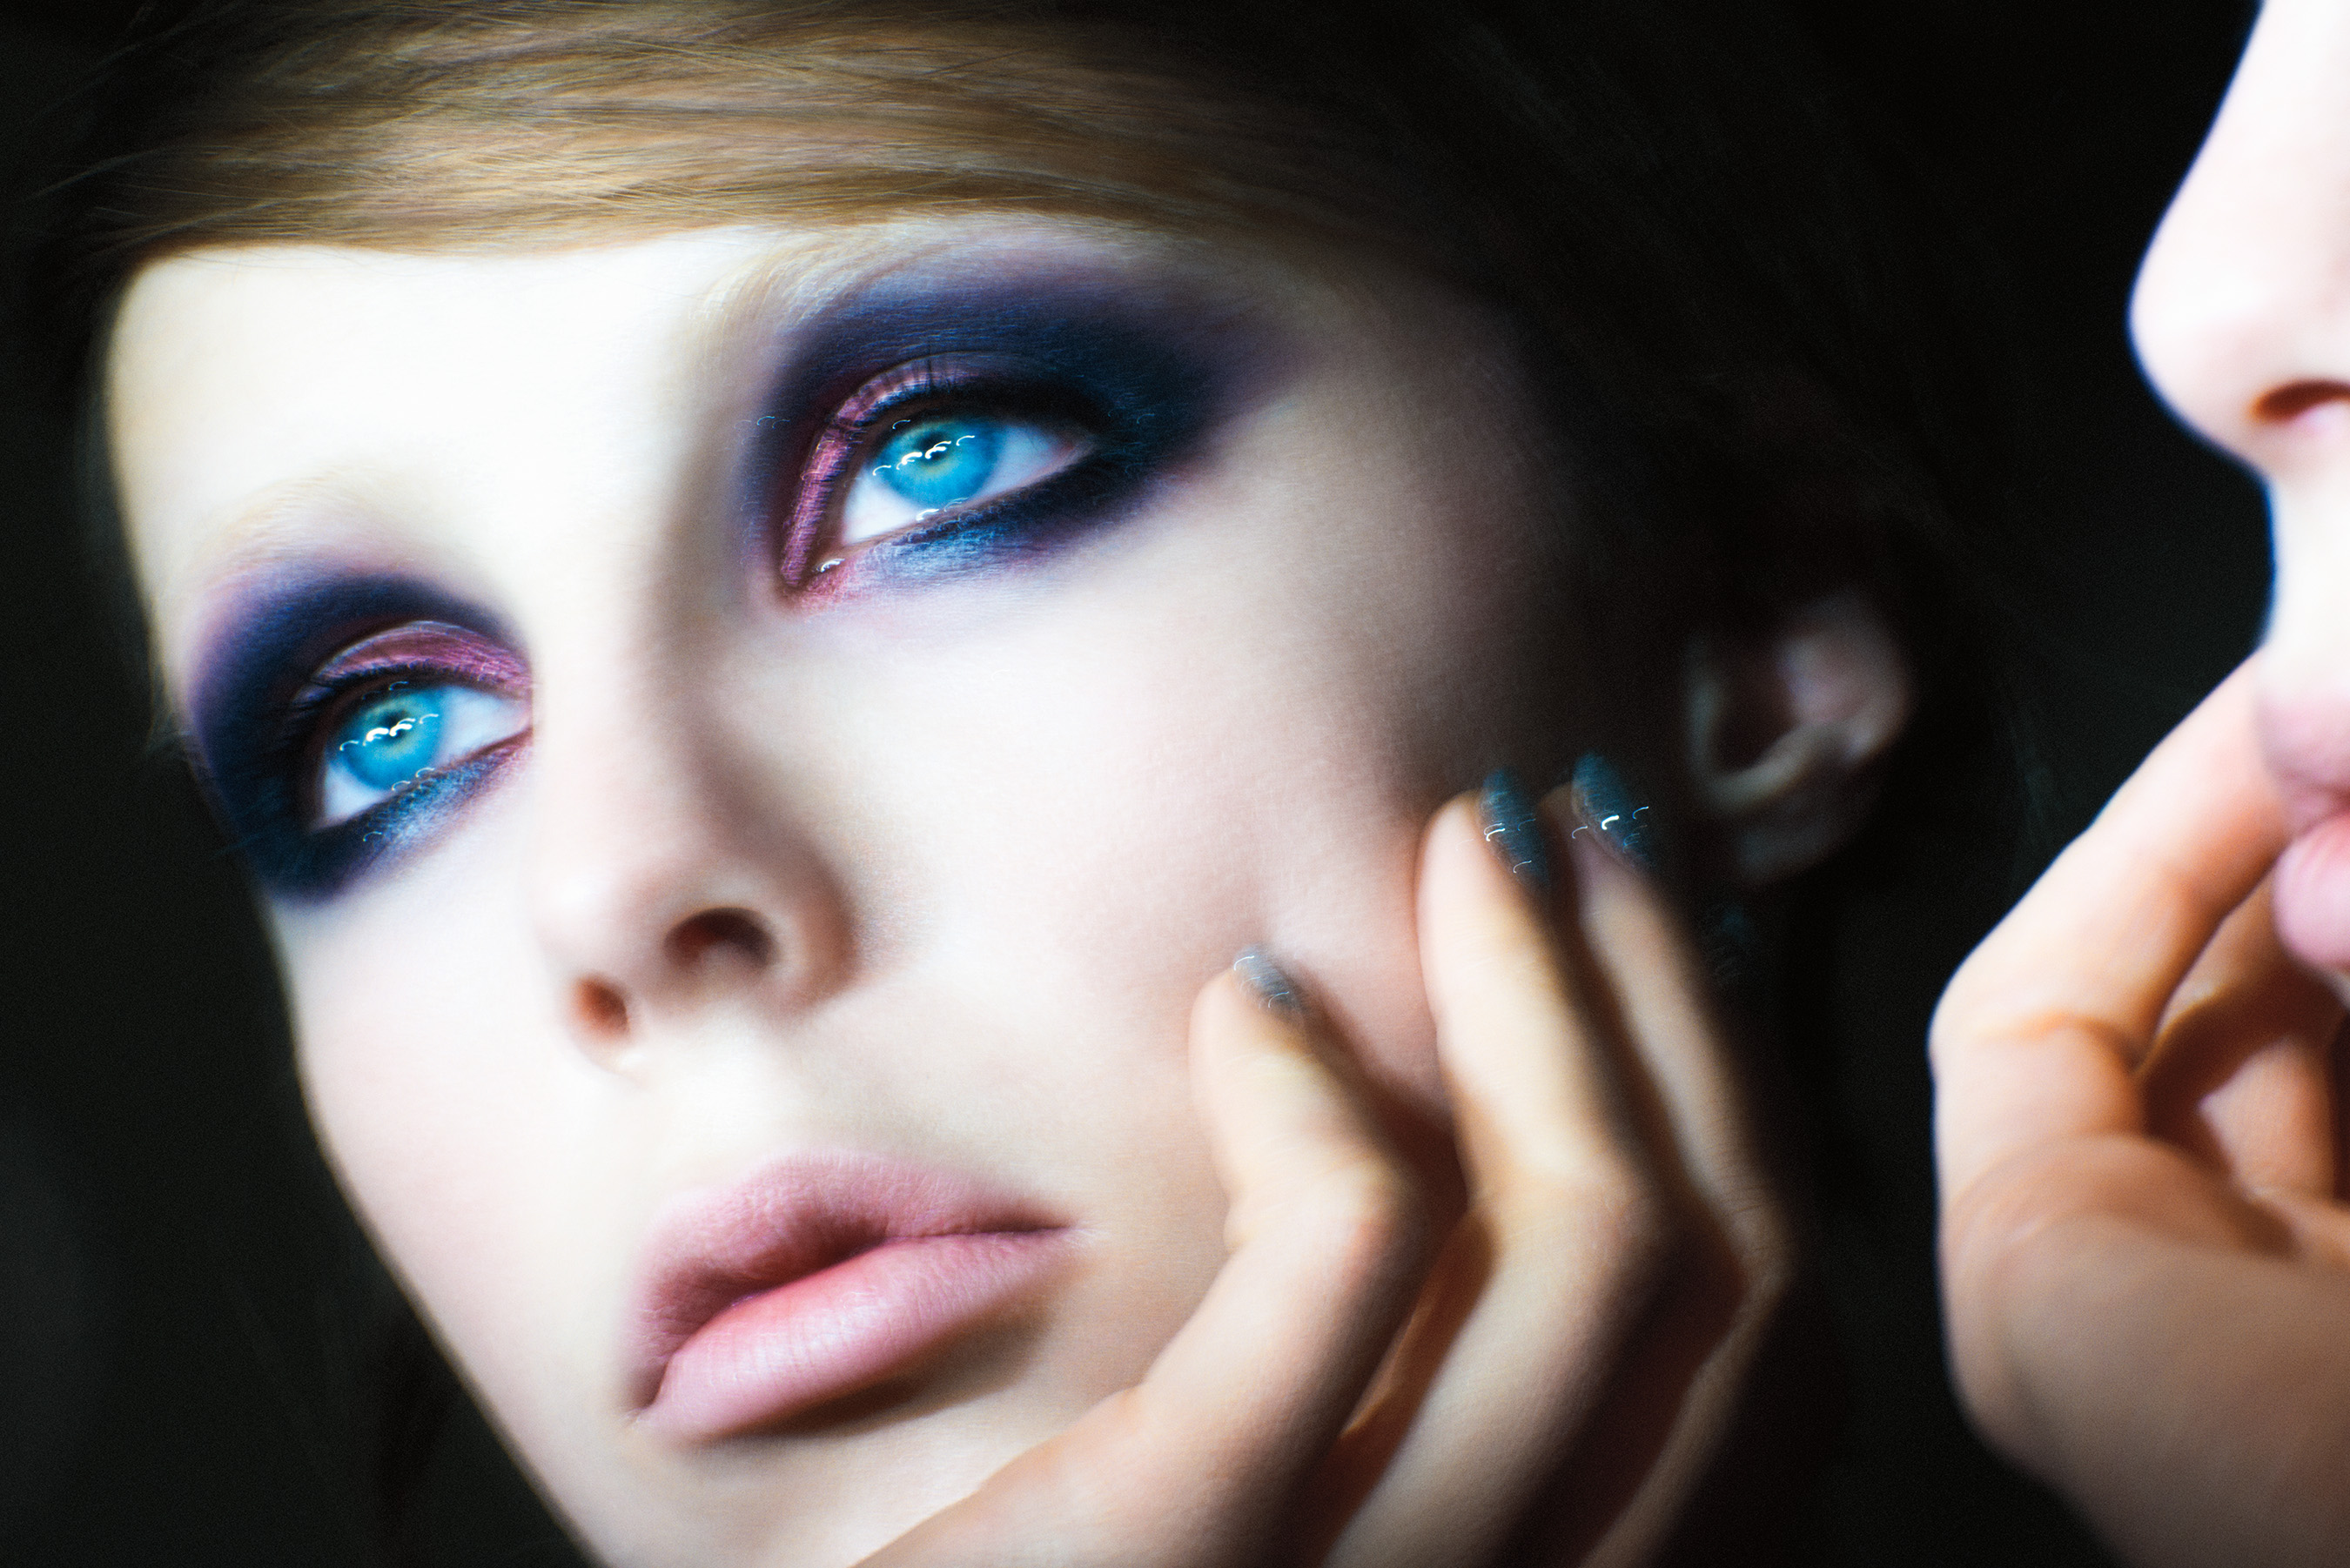 Marc Jacobs Beauty Campaign Image with Edie Campbell